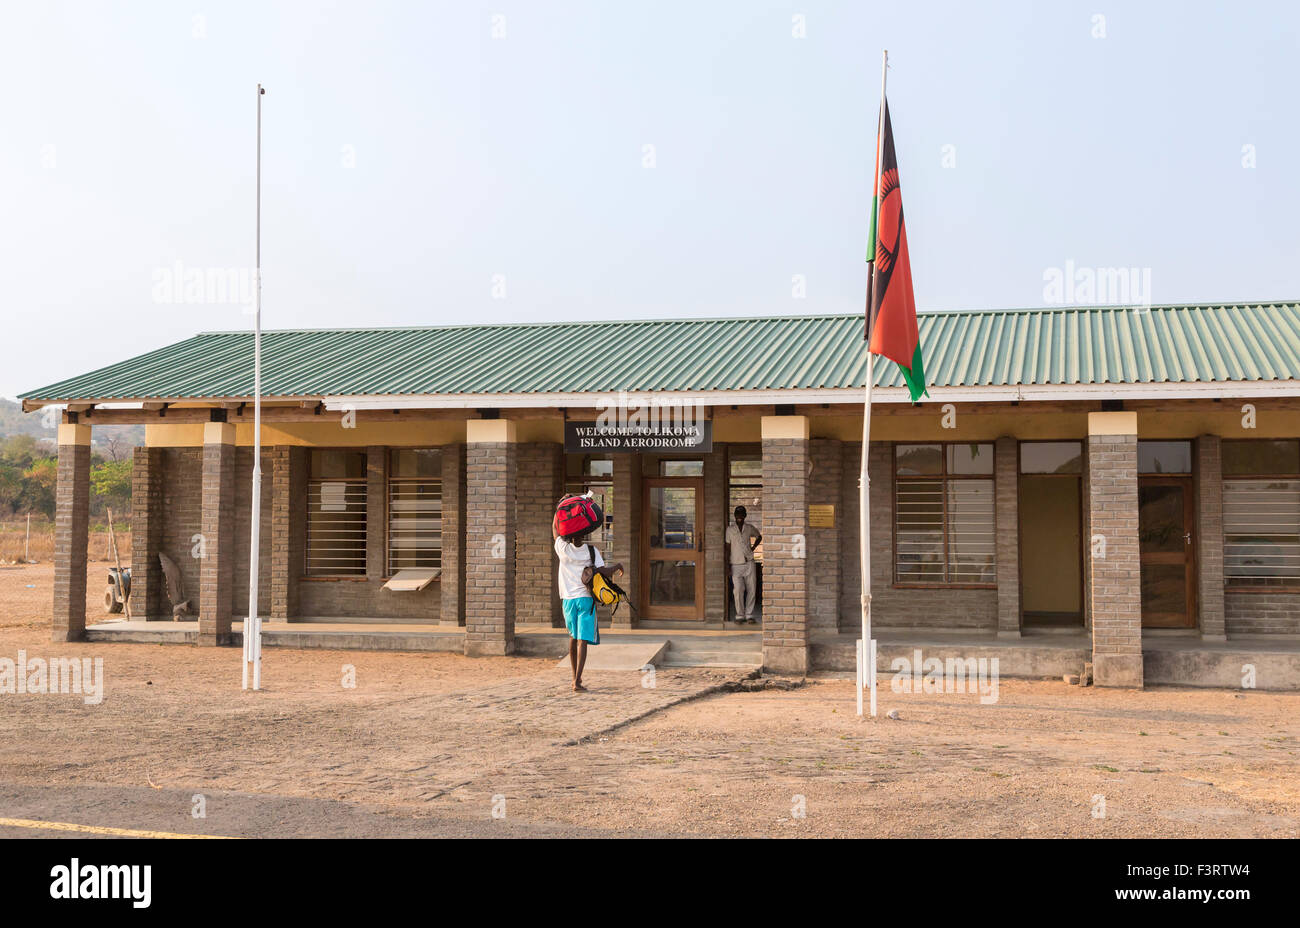 Air transport and travel, flying in Malawi: porter carrying luggage, Likoma Island Aerodrome terminal building, - Stock Image